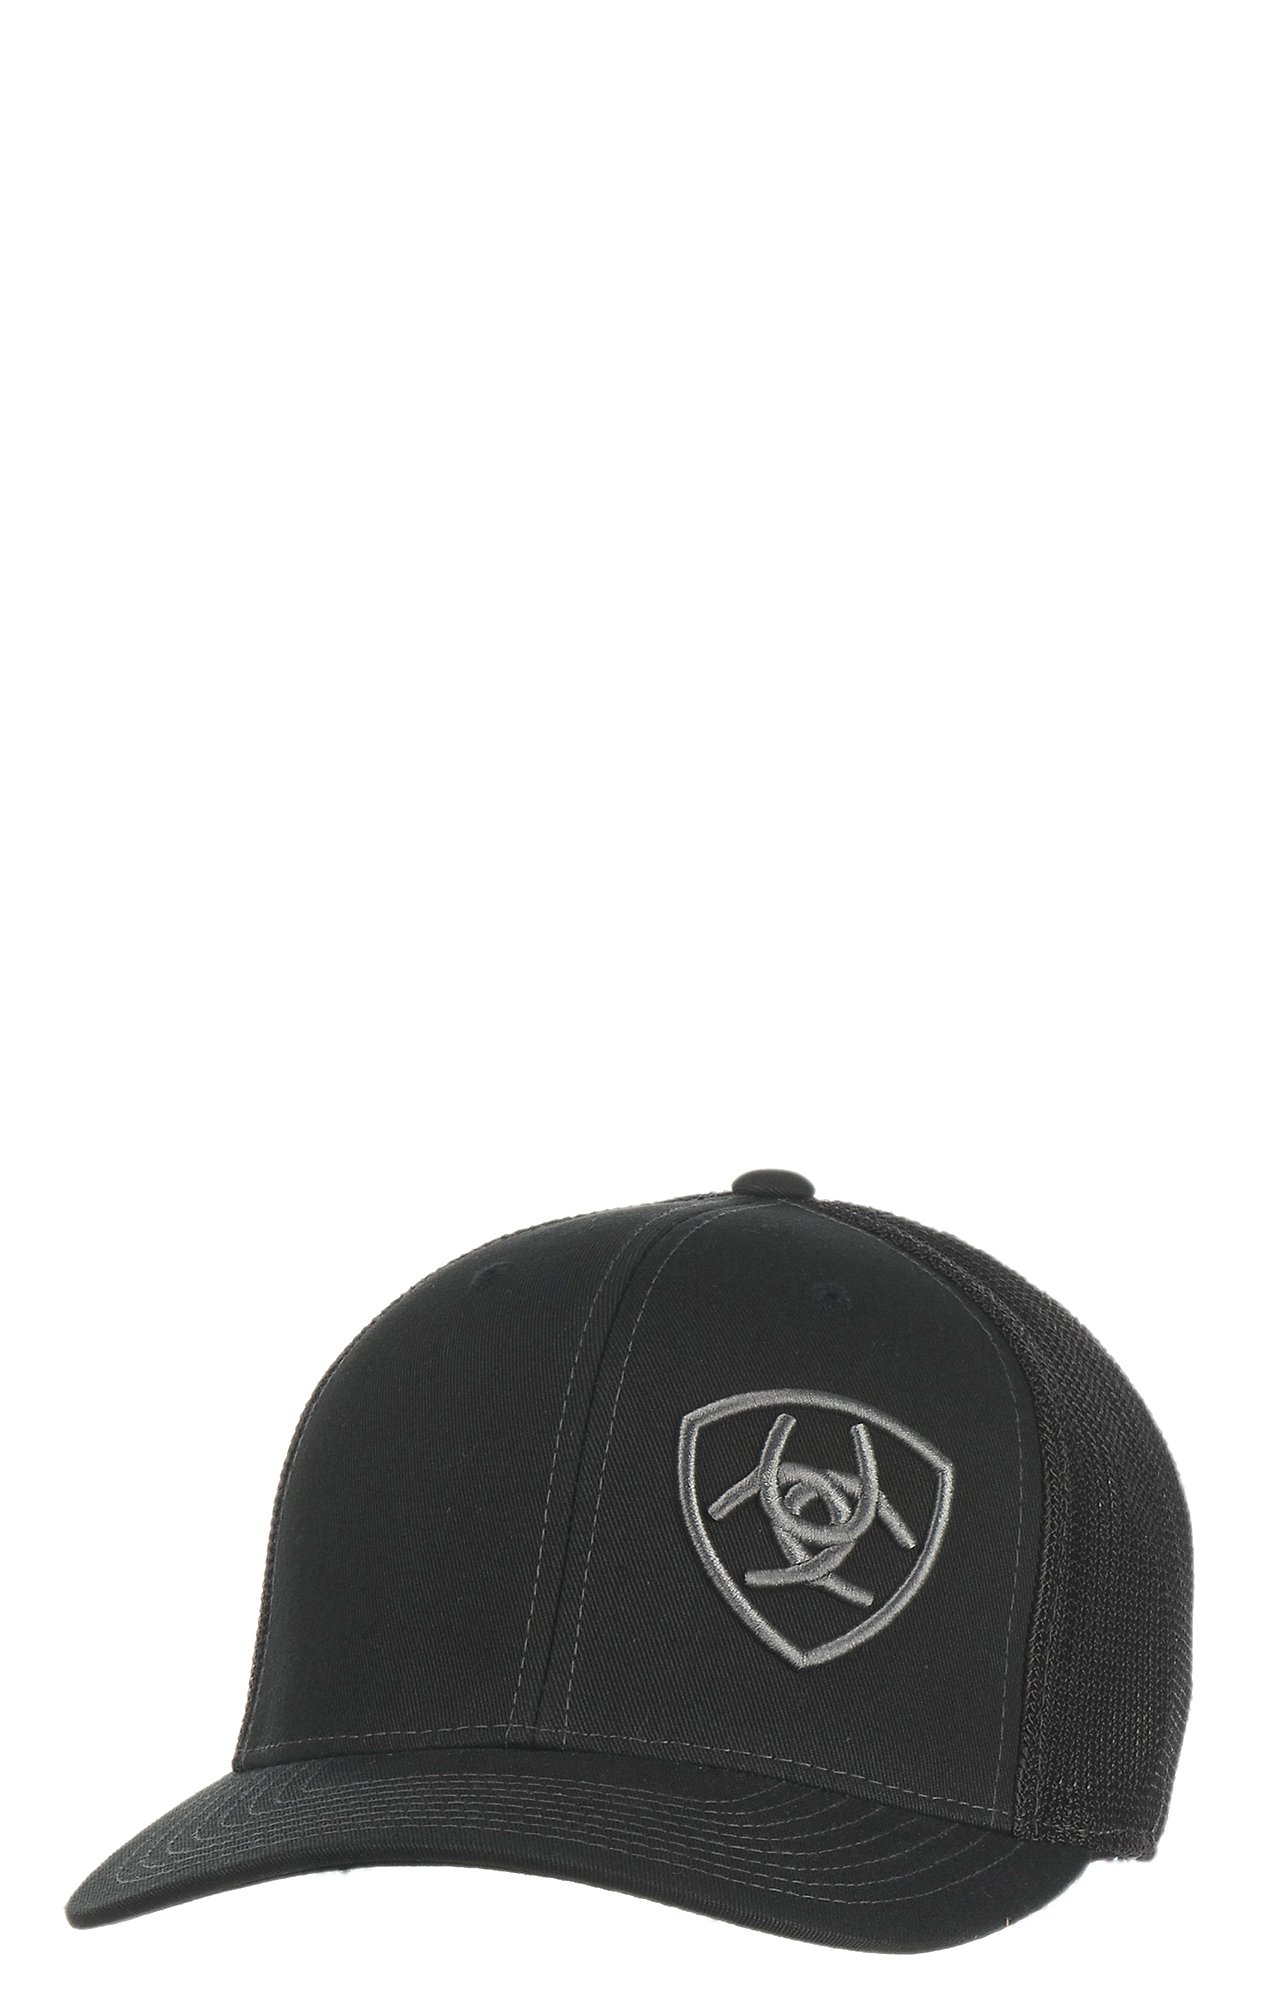 Ariat Black with Grey Logo Mesh Snap Back Cap  5a360994937